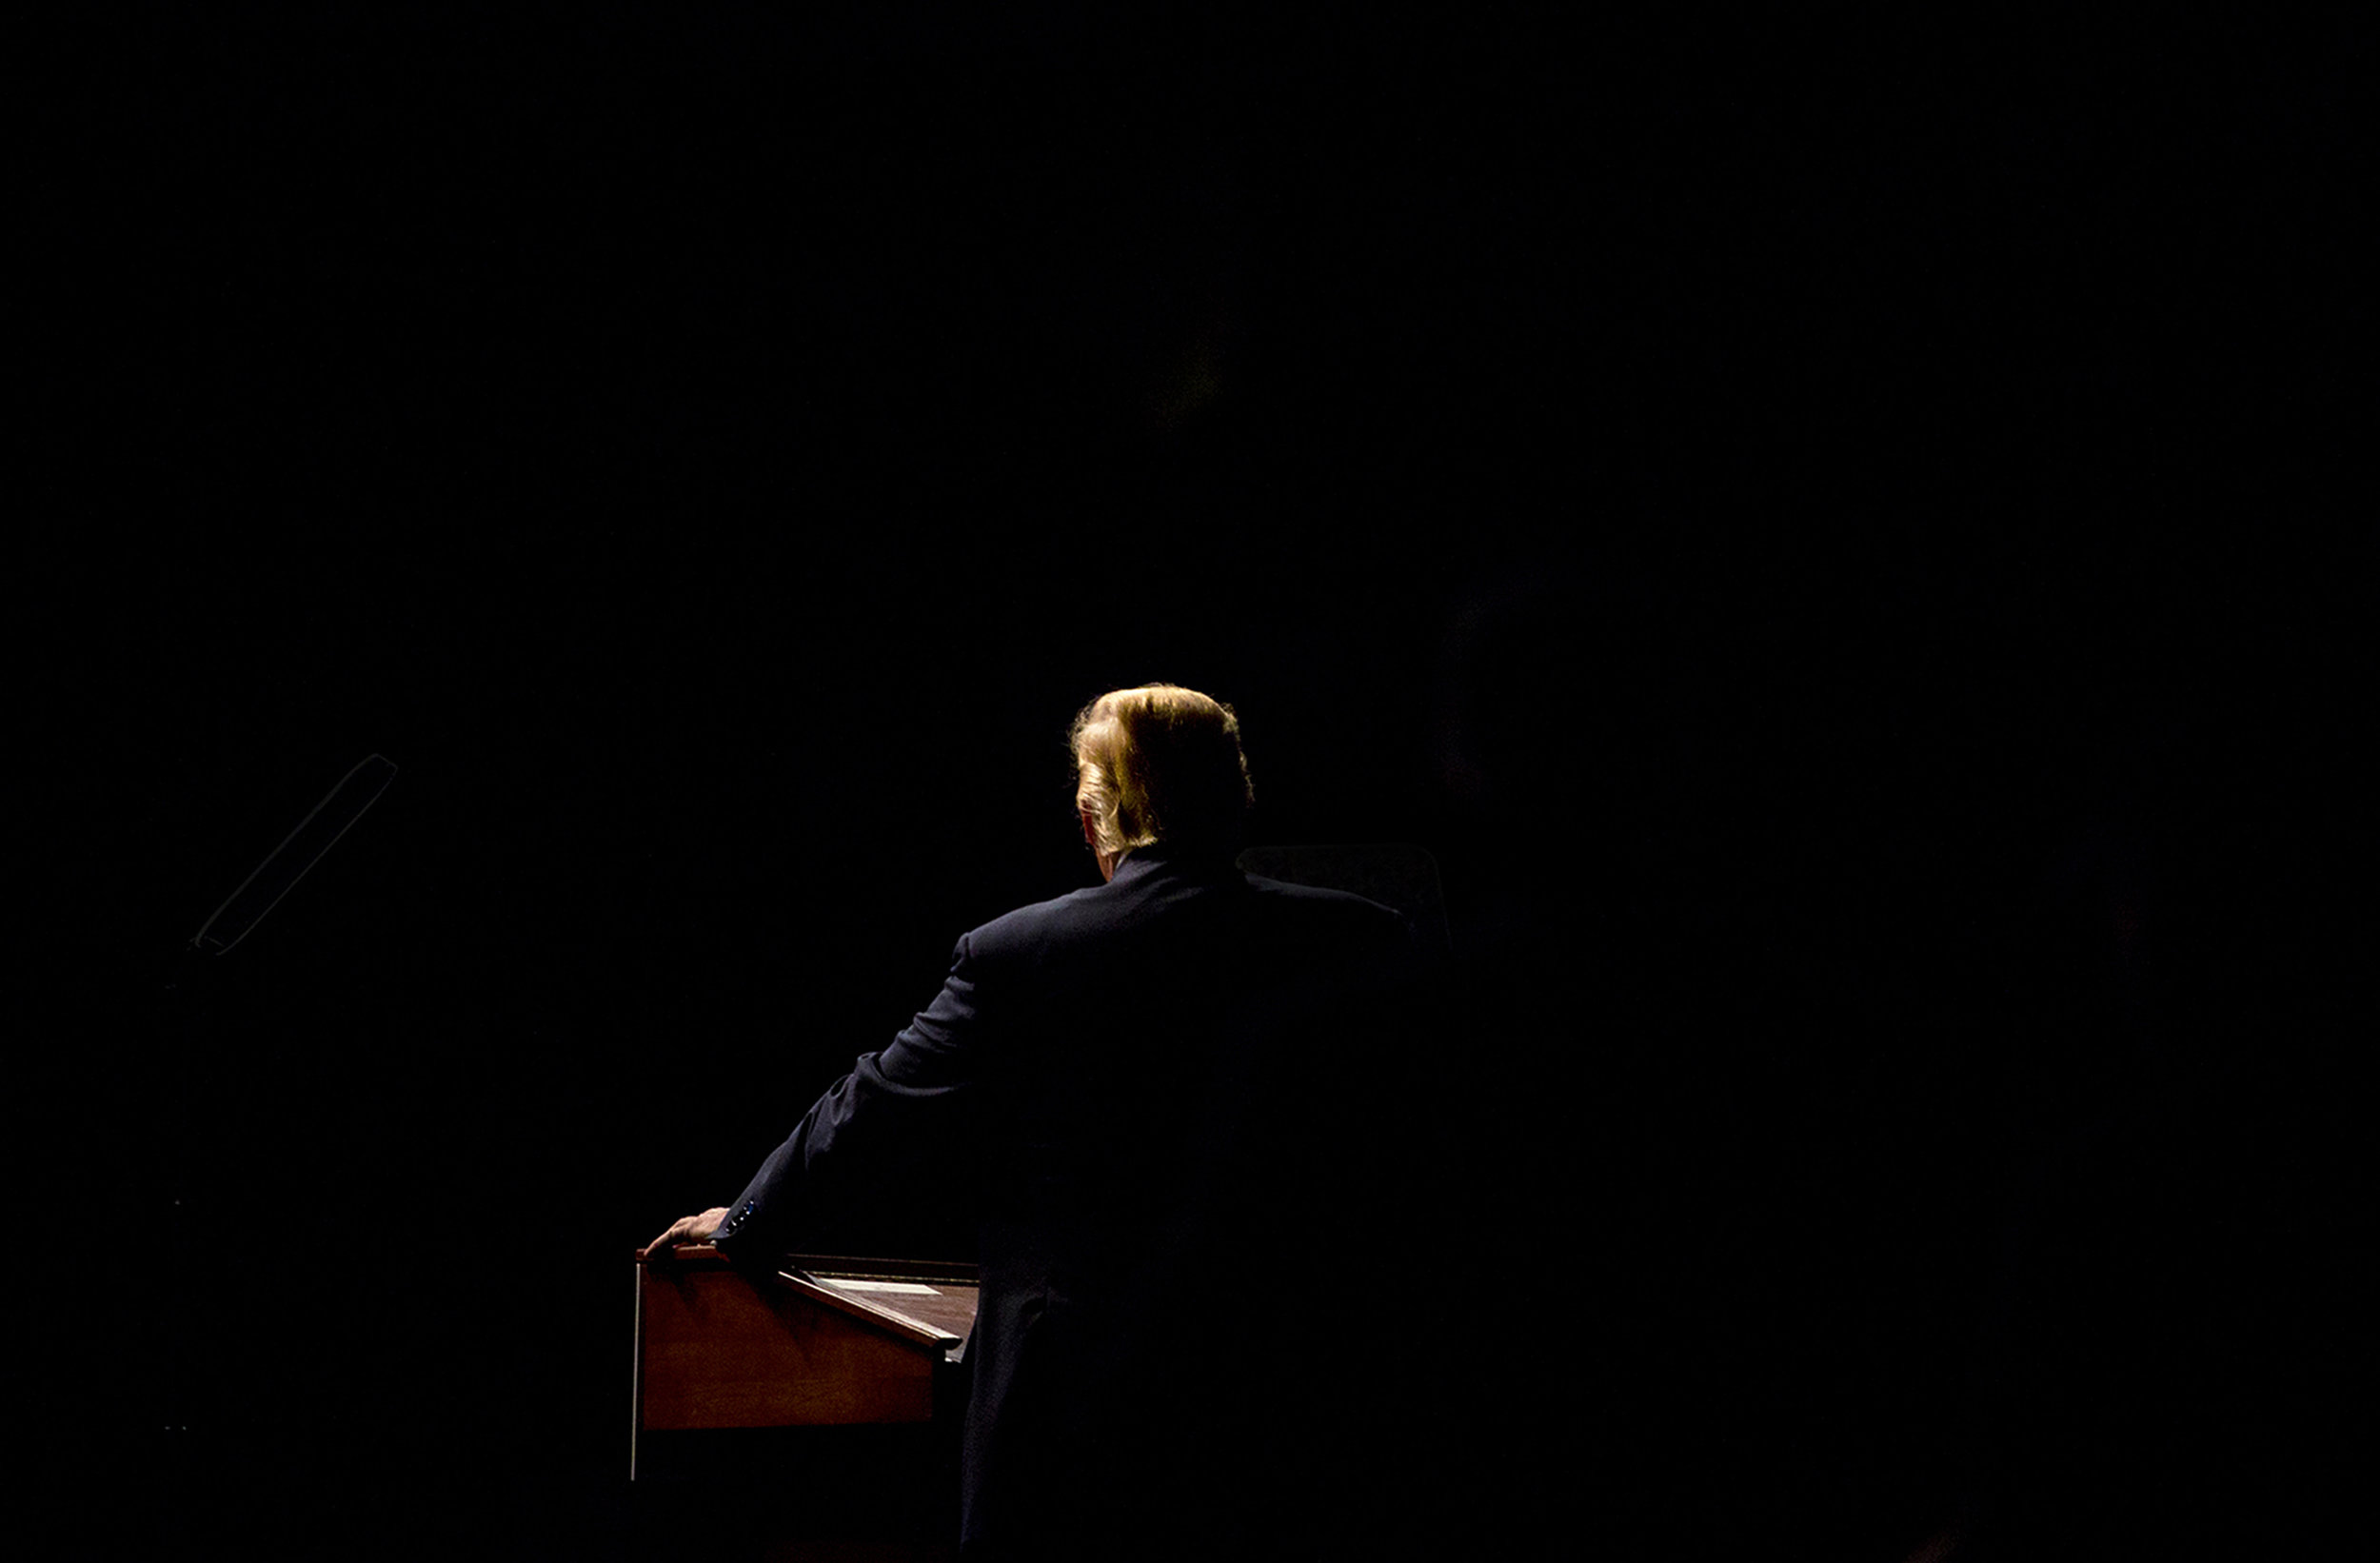 Donald Trump illuminated by bright stage lights at a campaign rally in Bangor, Maine. Trump campaigned hard in the second district of the state and went on the win it in the election, splitting Maine's electoral votes for the first time in state history.